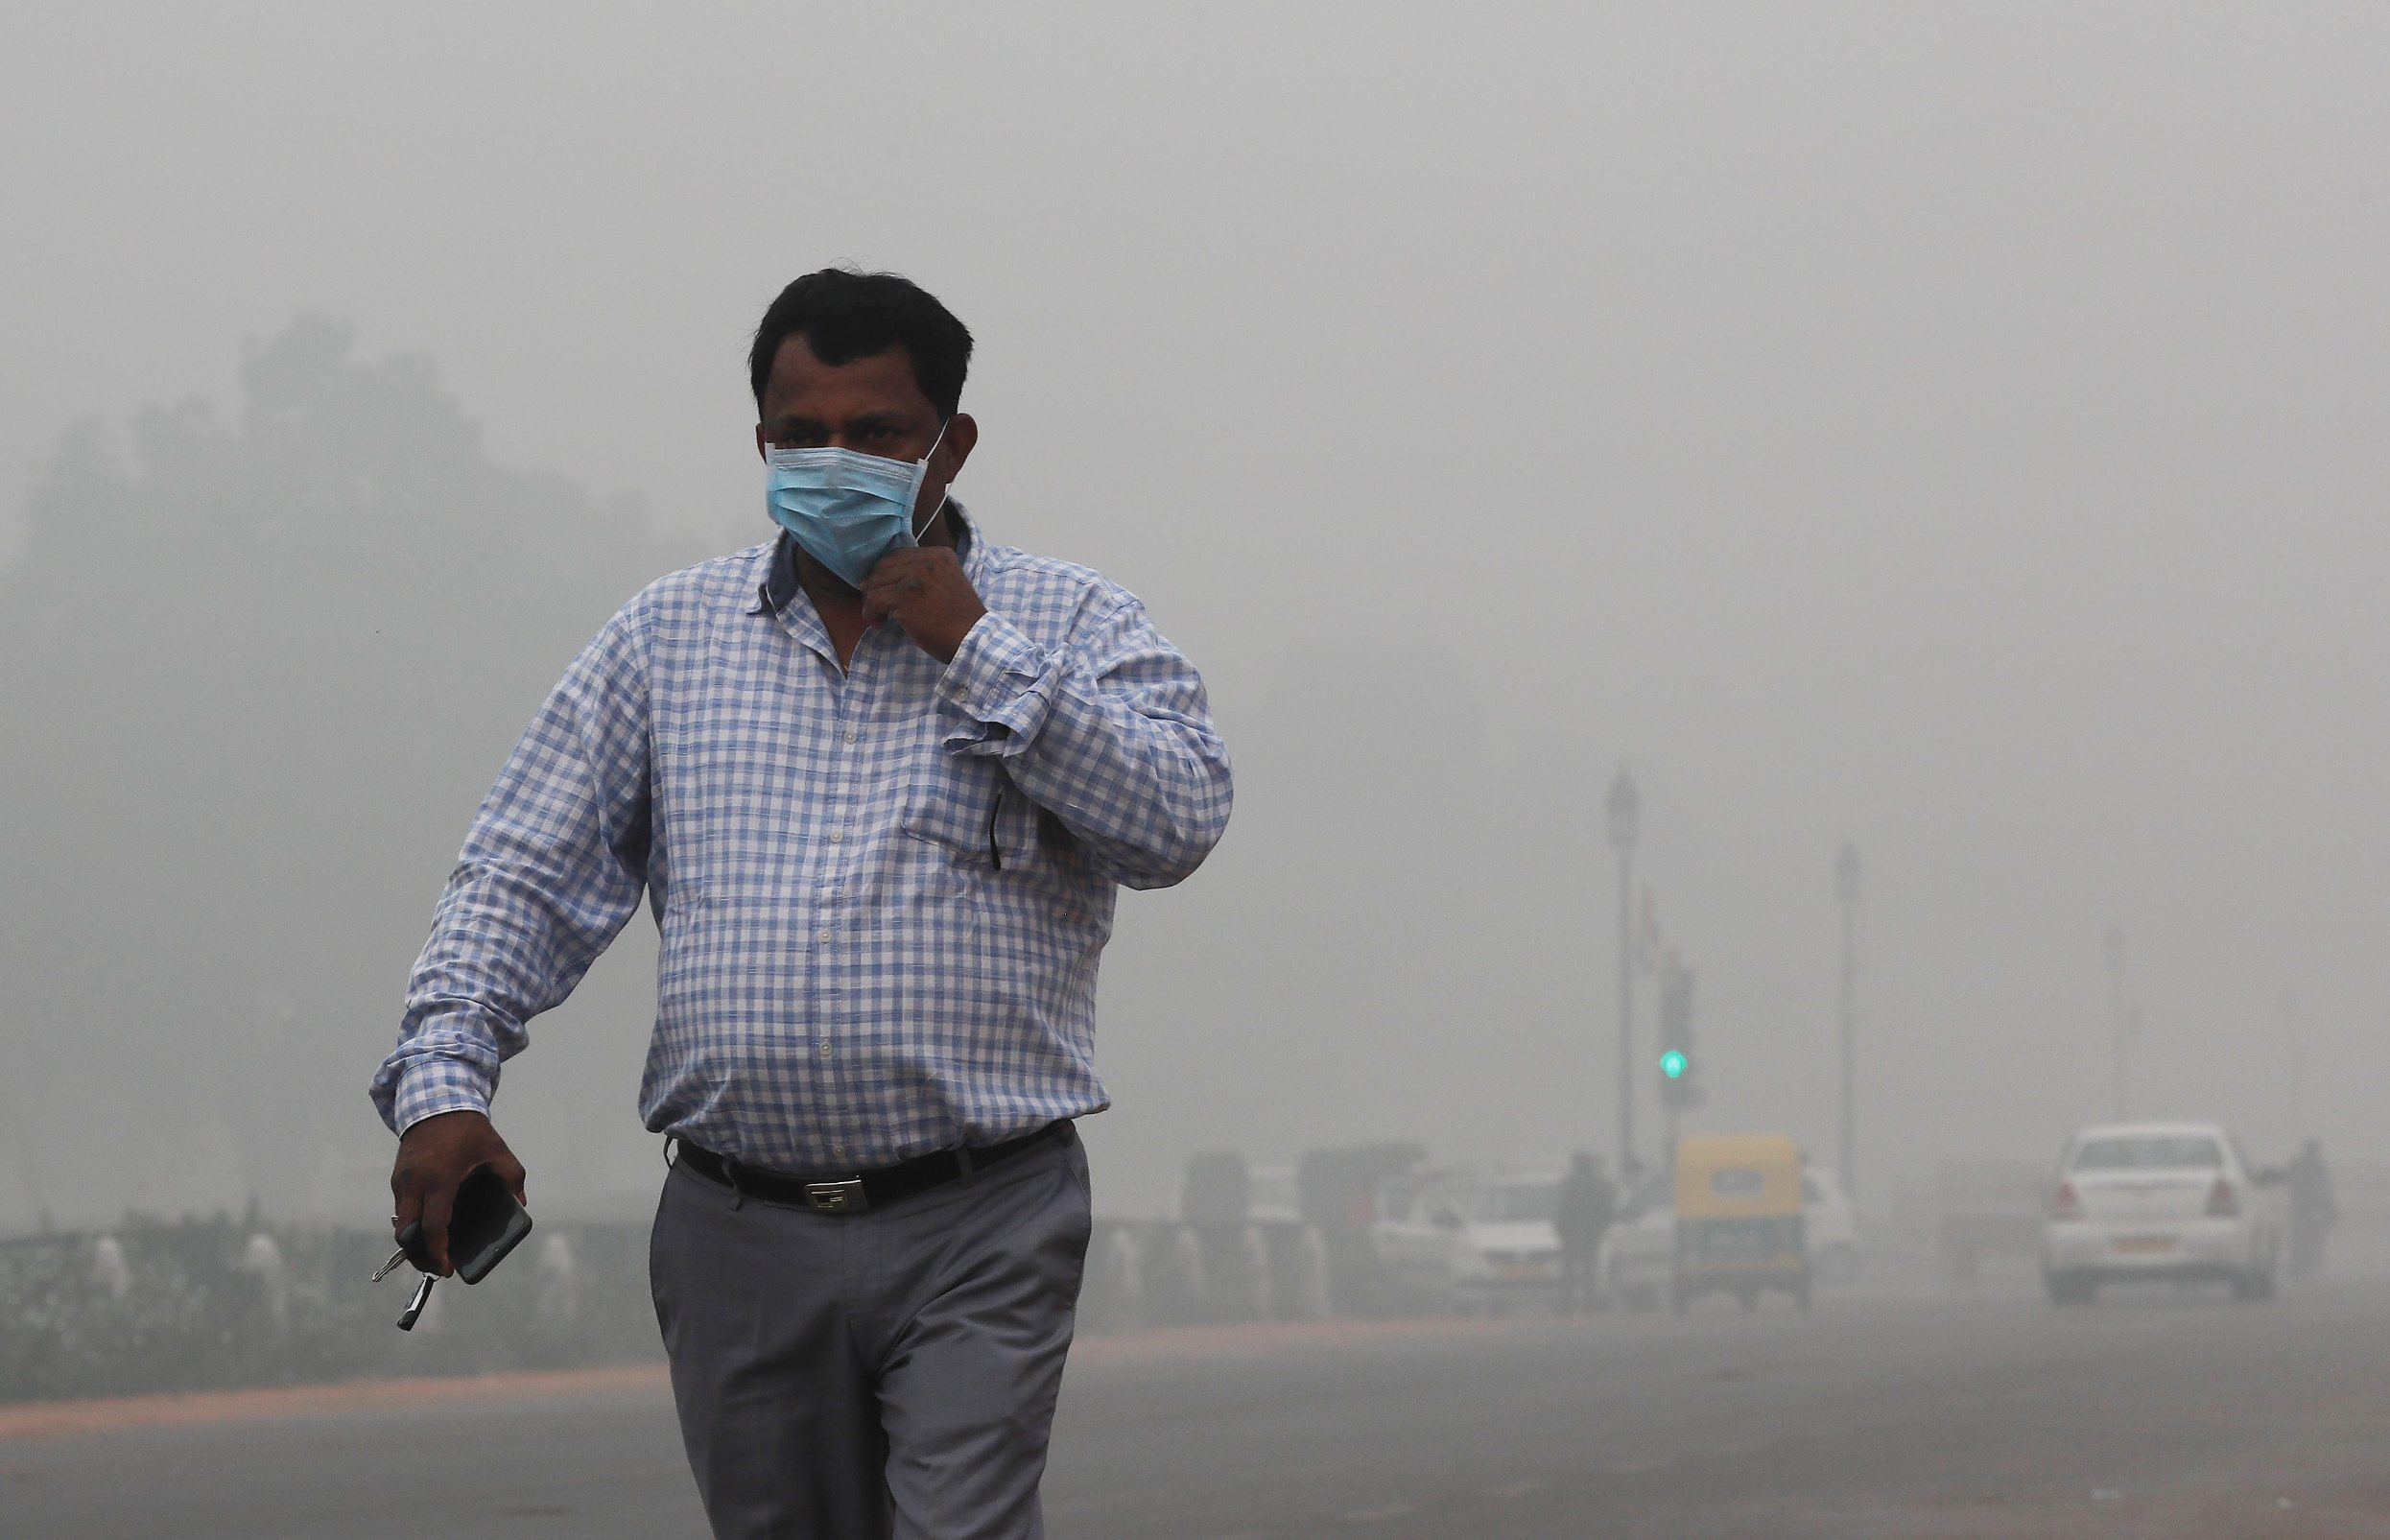 2019-11-03T051619Z_581825828_RC175A2EBA10_RTRMADP_3_INDIA-POLLUTION